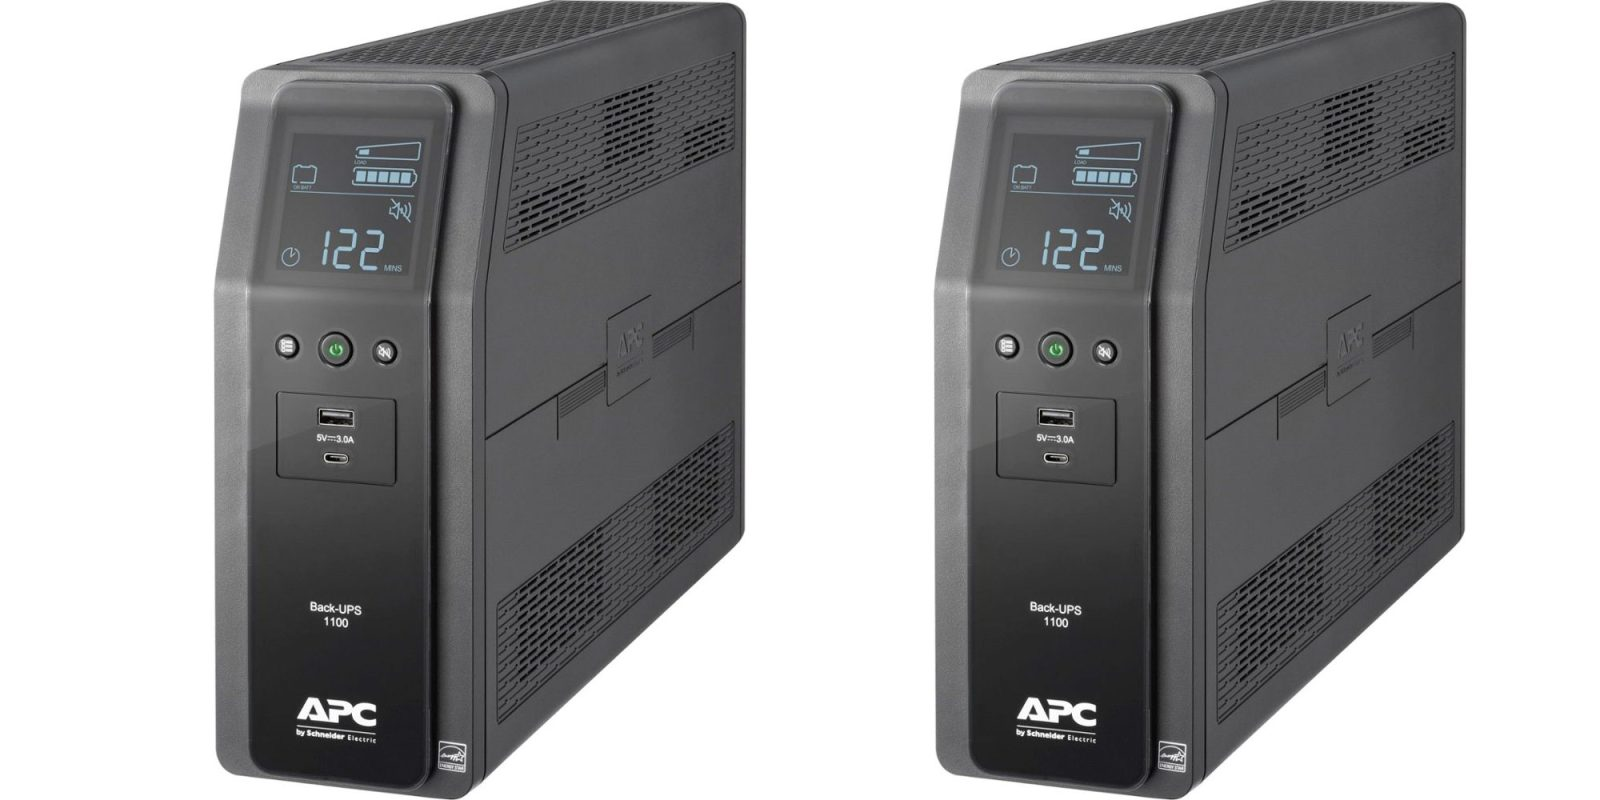 Keep your desk up when the lights go out with APC's Back-UPS: $120 (Reg. $165)